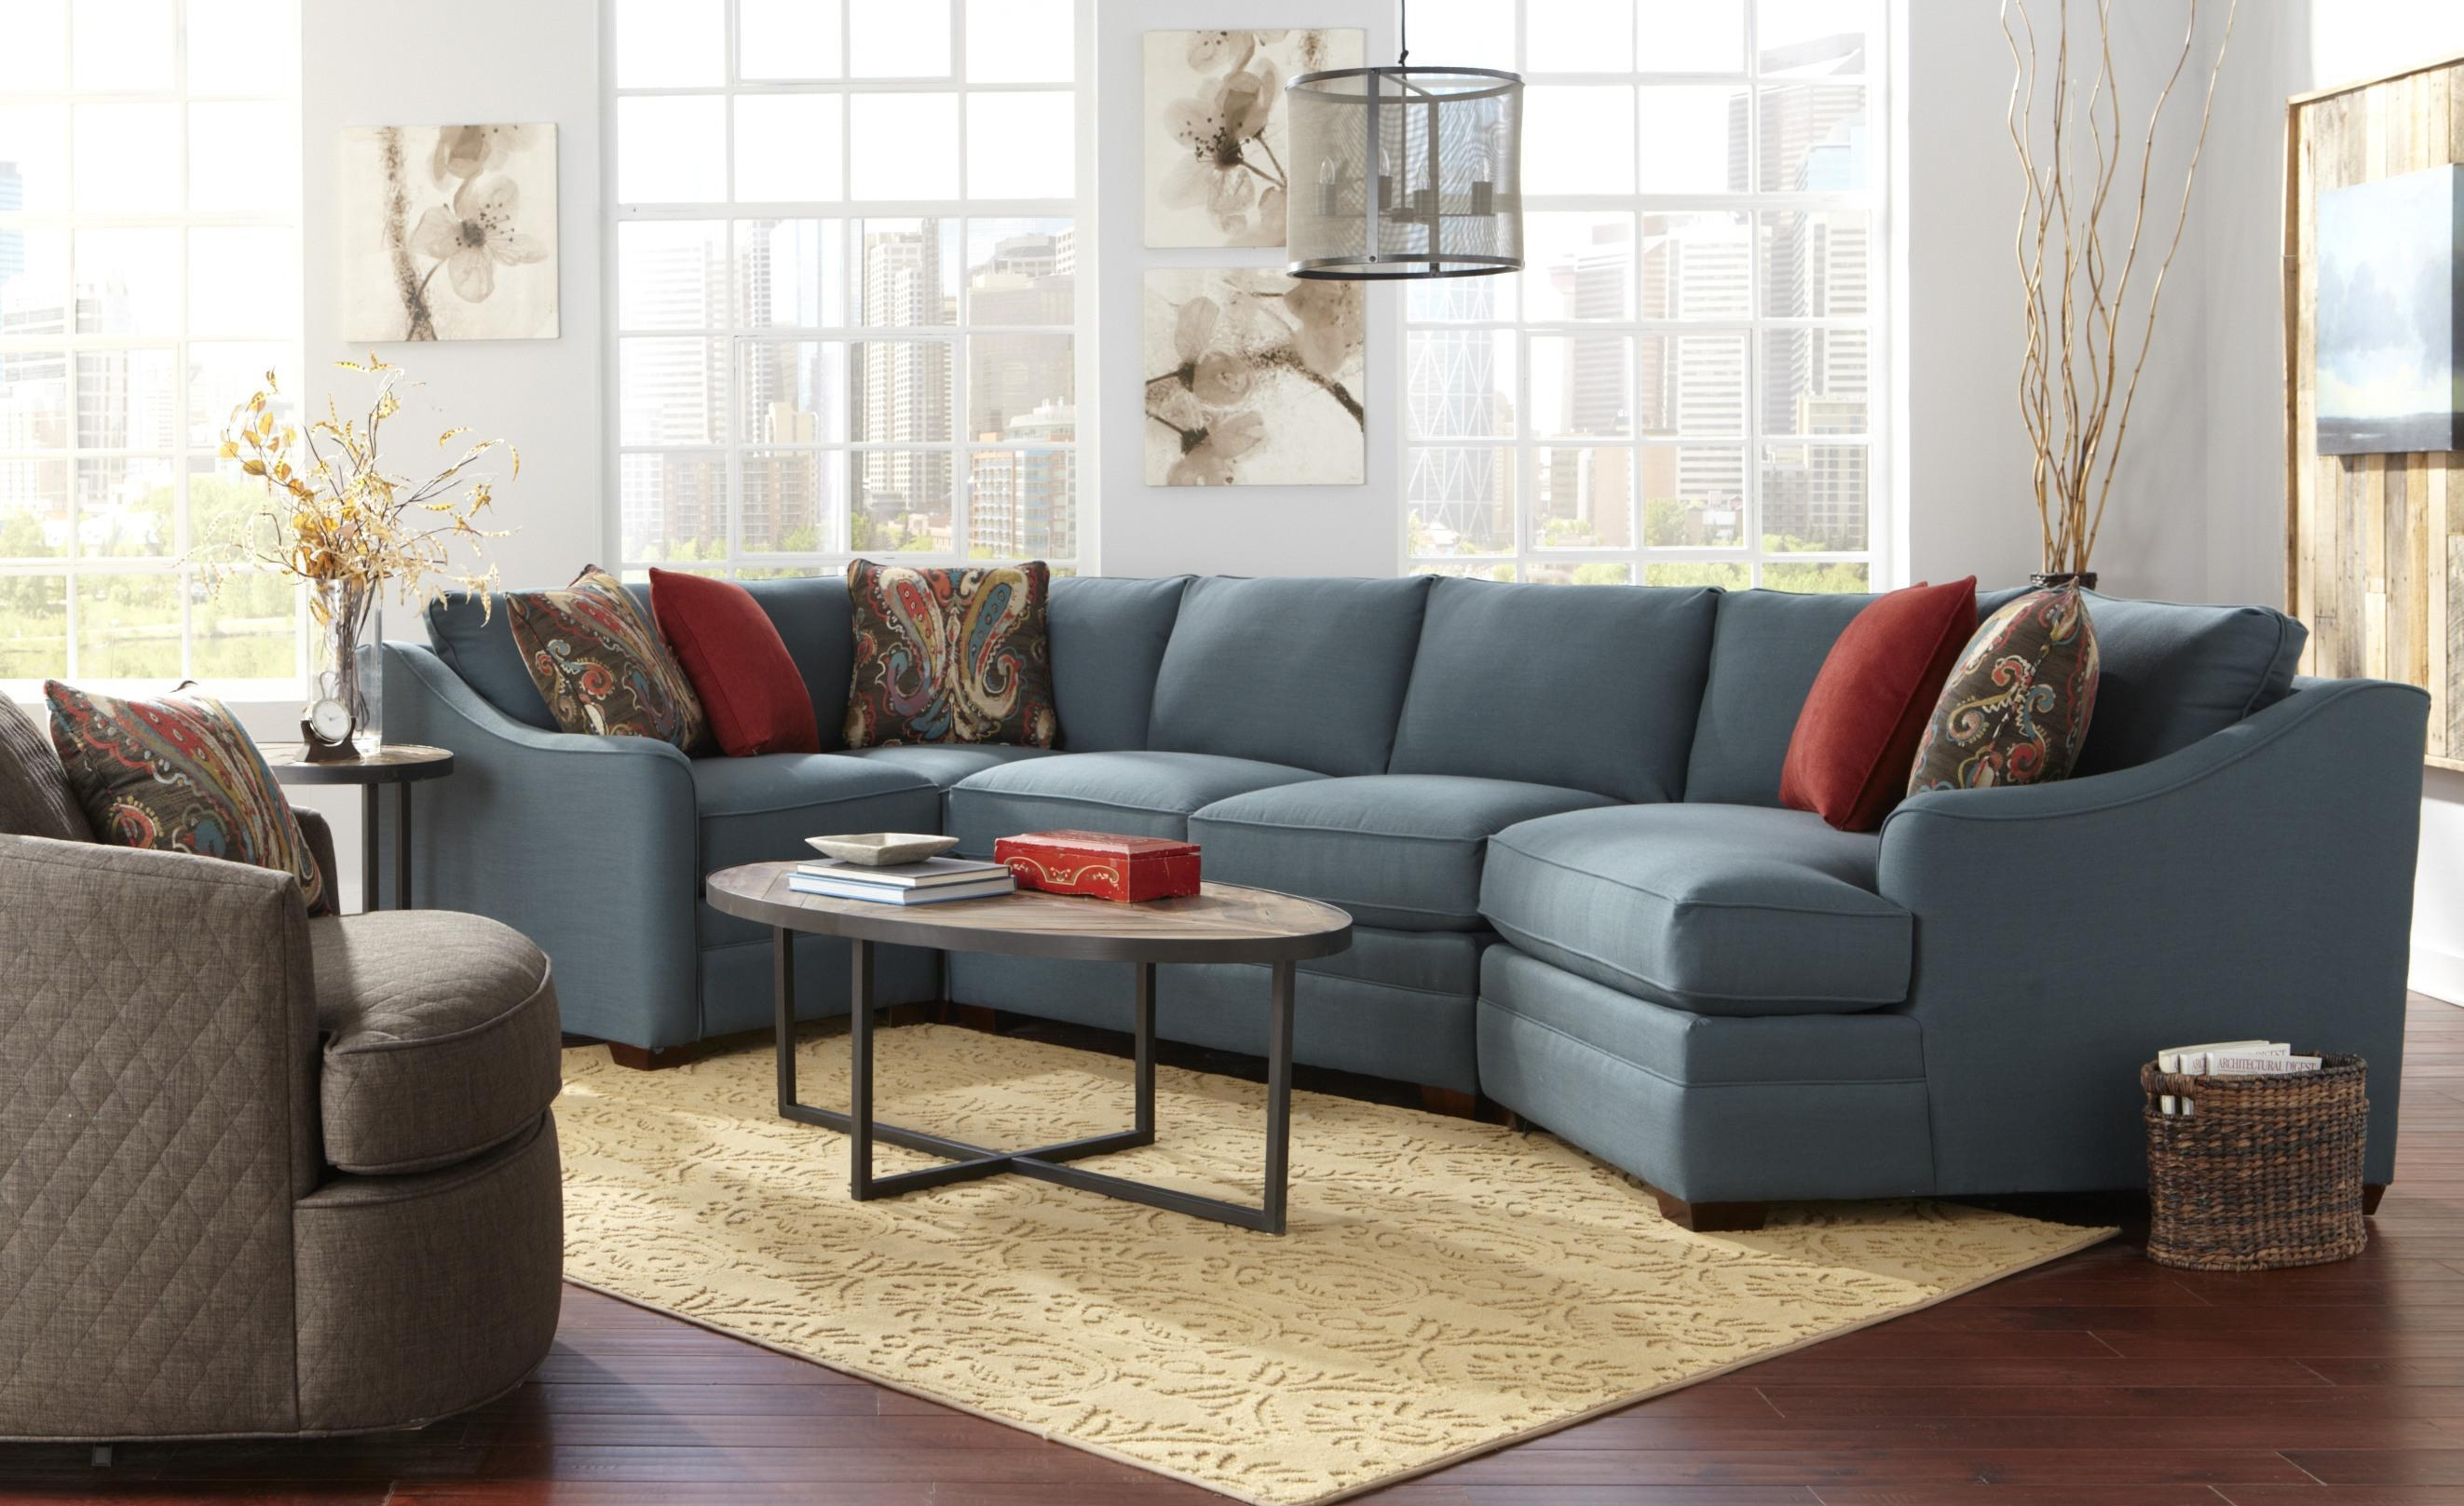 Cozy Life F9 Custom Collection Dancer 3 Piece Sectional W/ Raf Inside Sectional Cuddler (View 12 of 20)